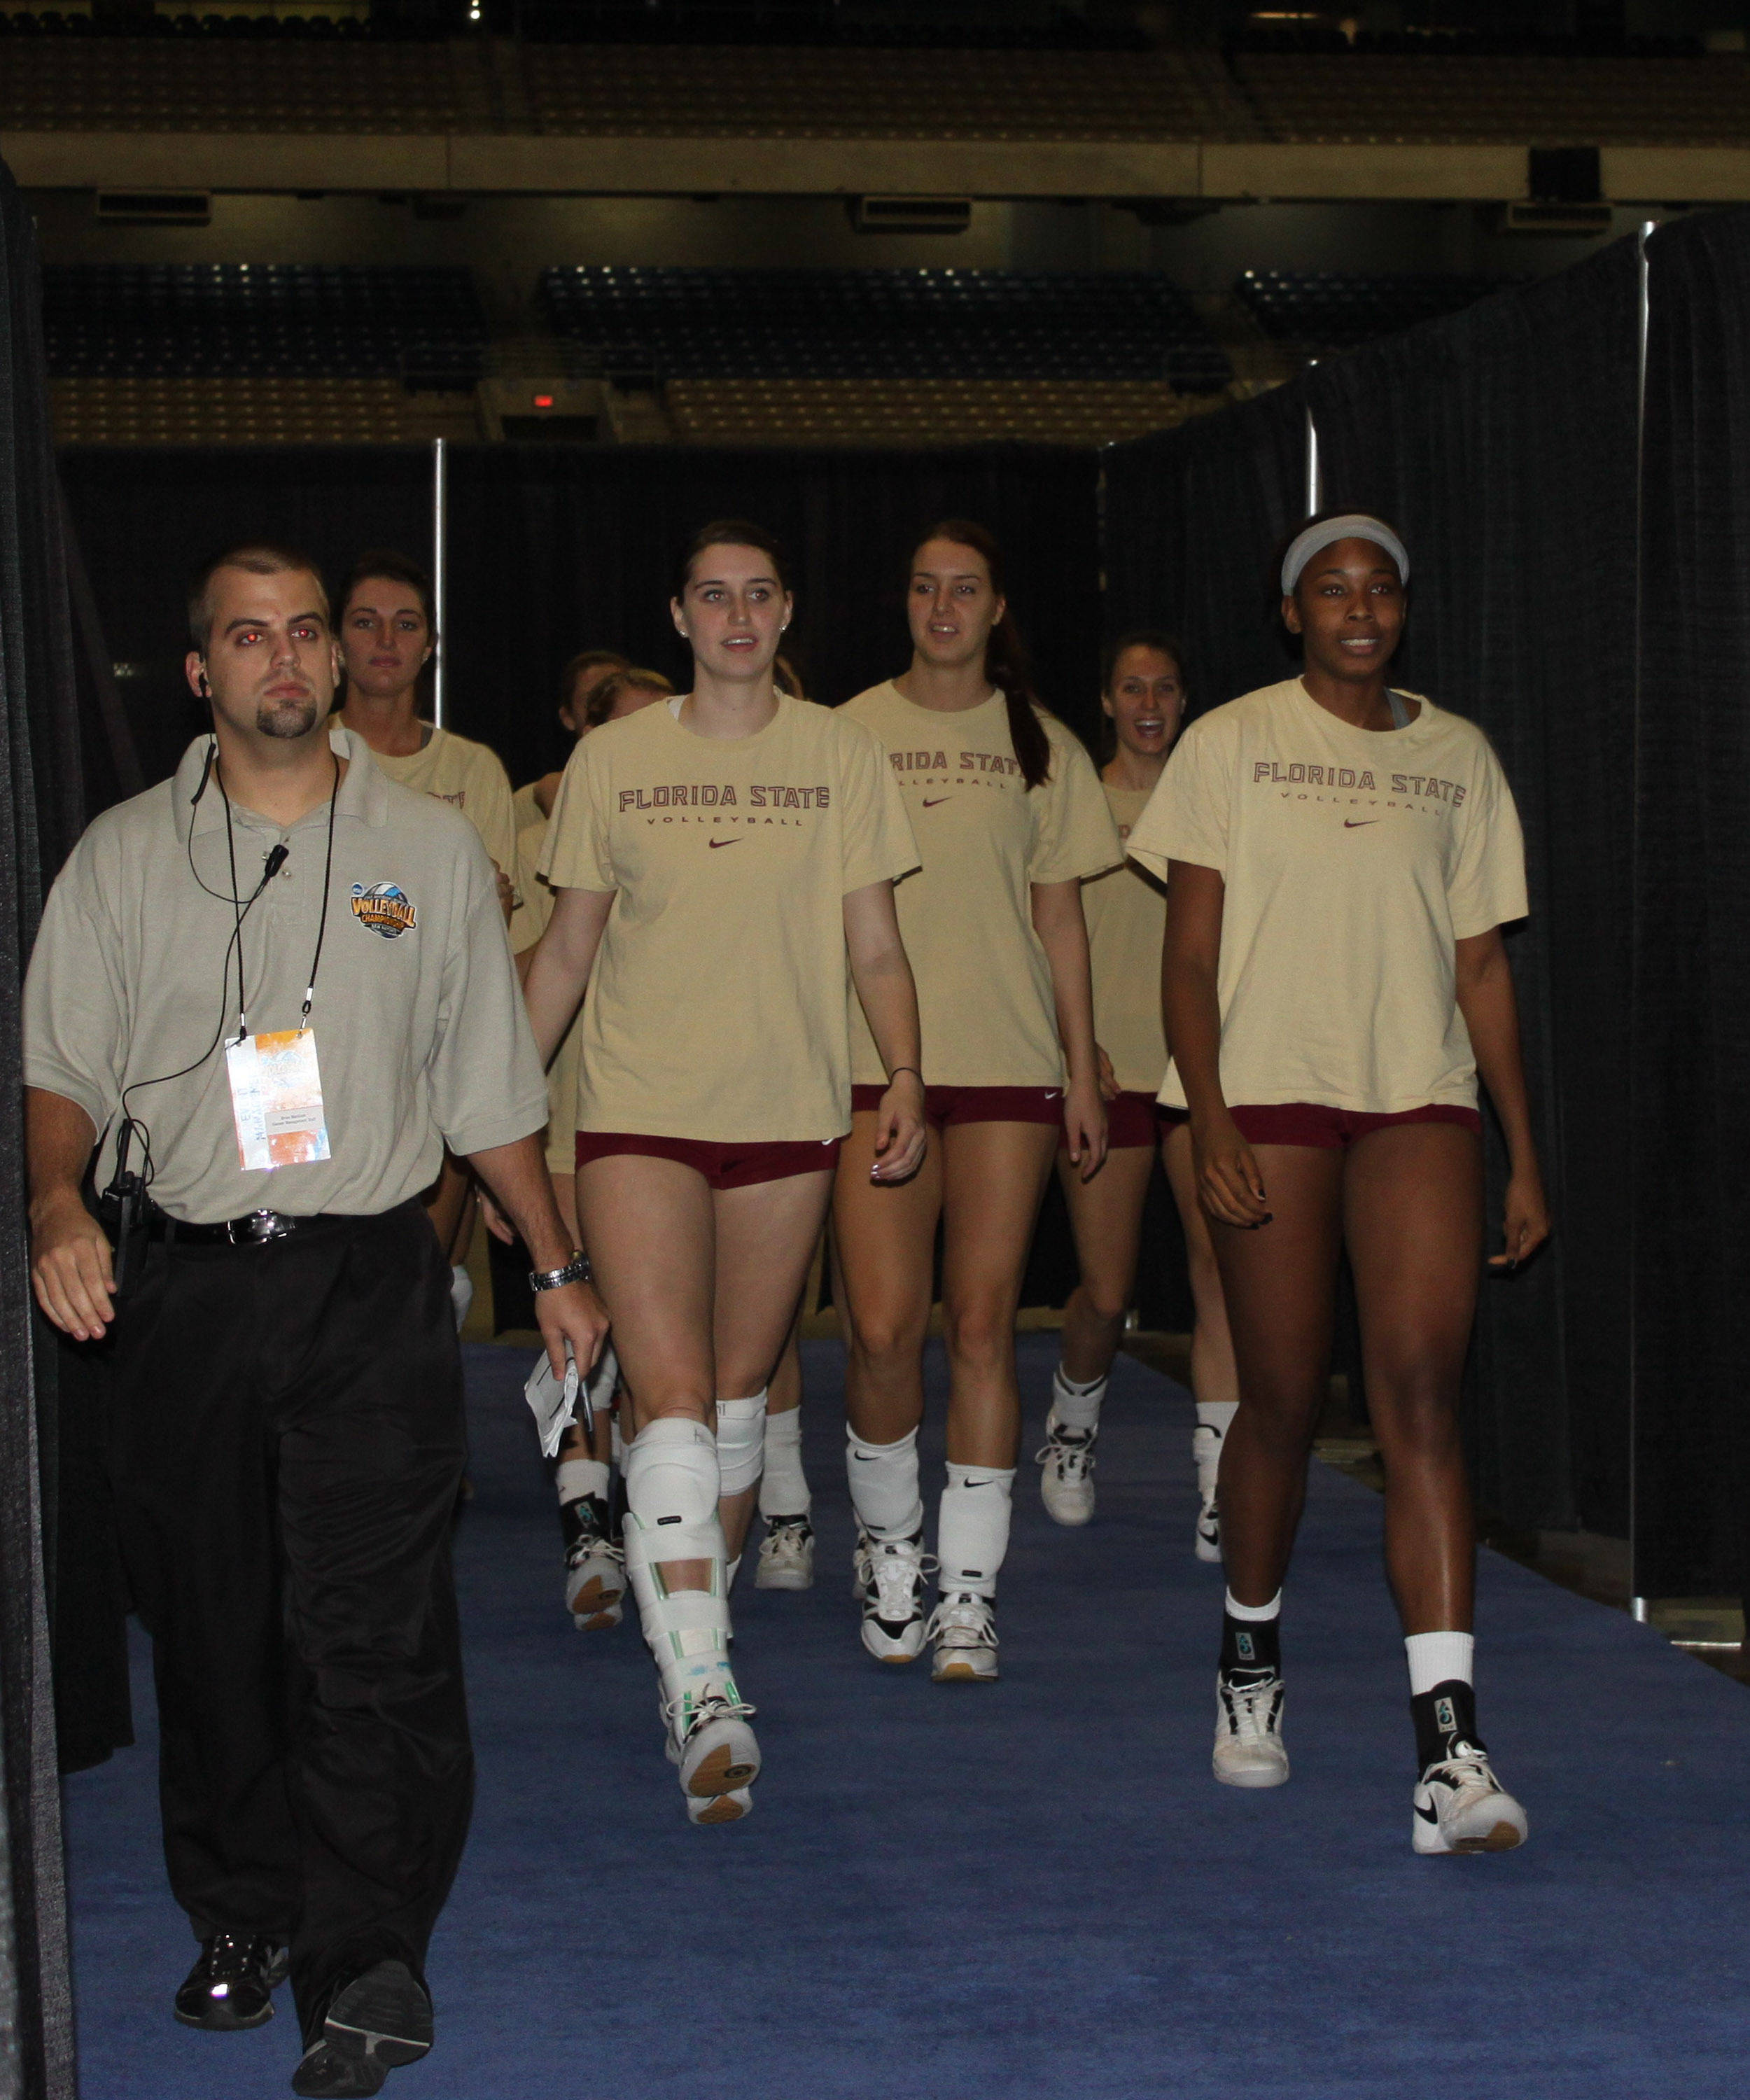 Team walks out of the court